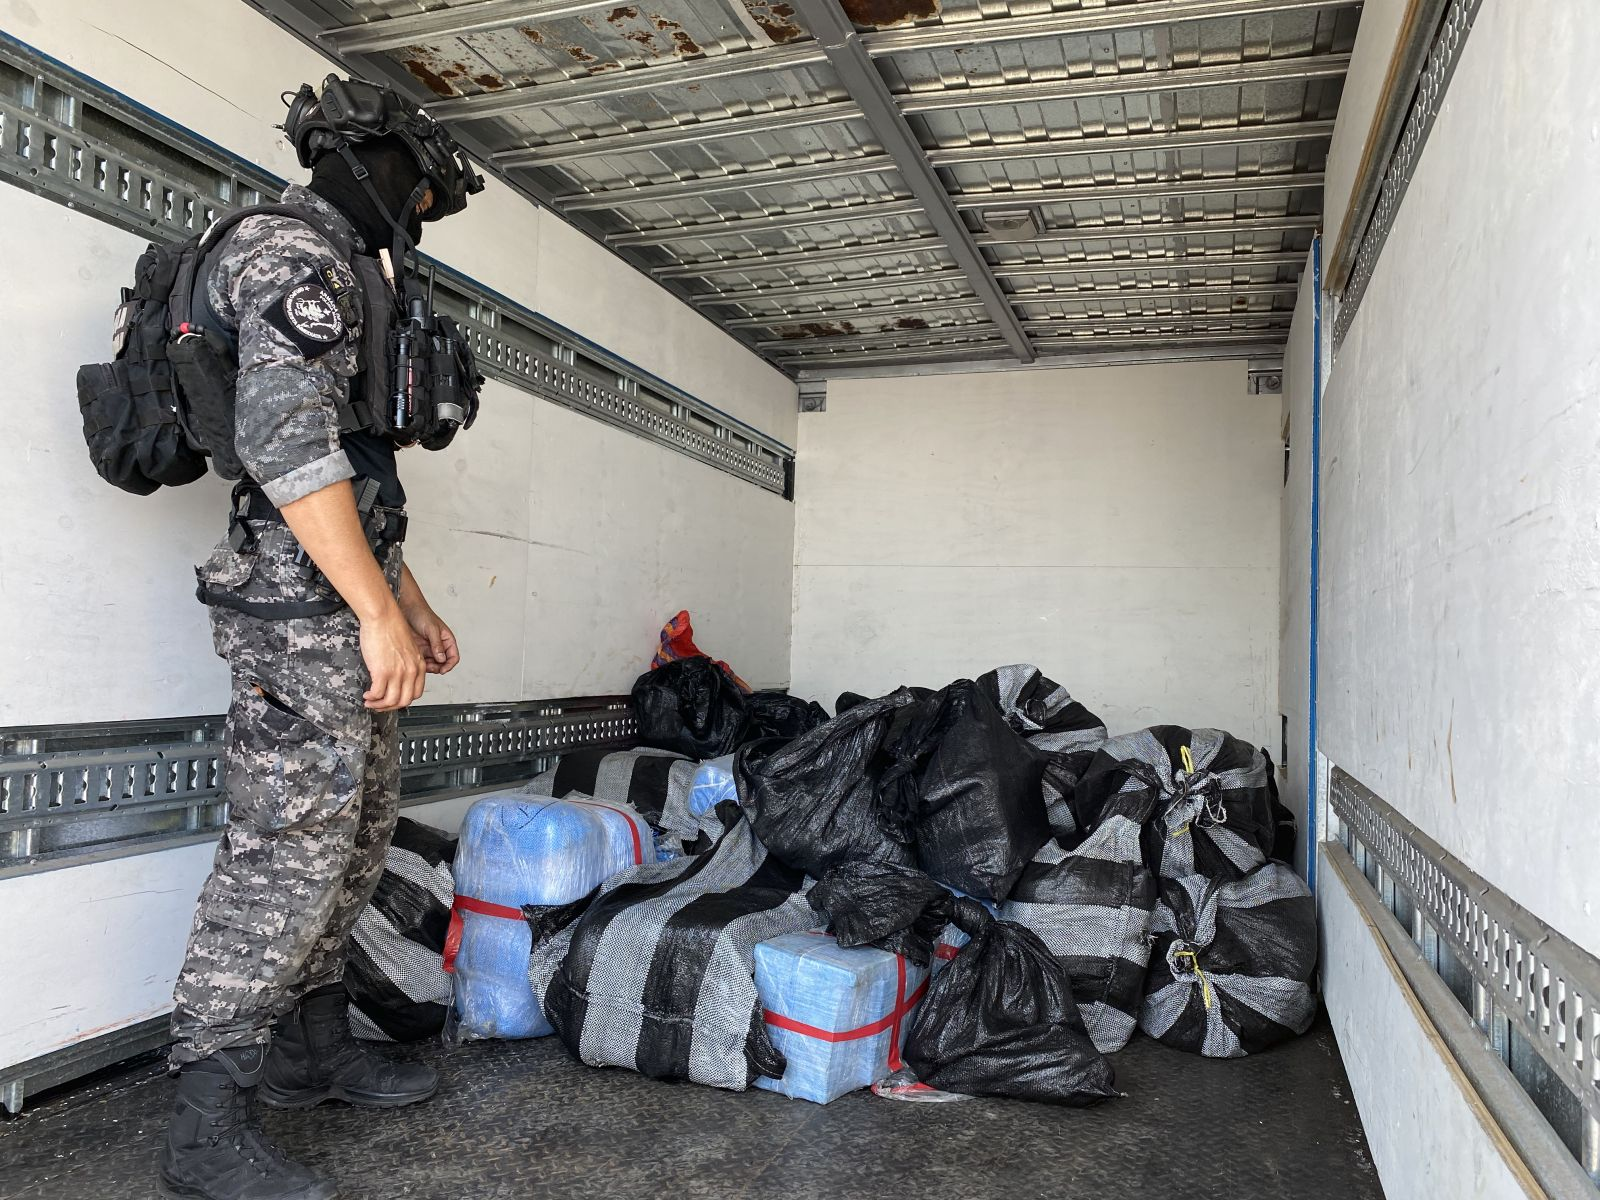 Chilean Security Forces Seize 4 Tons of Drugs in 2 Operations